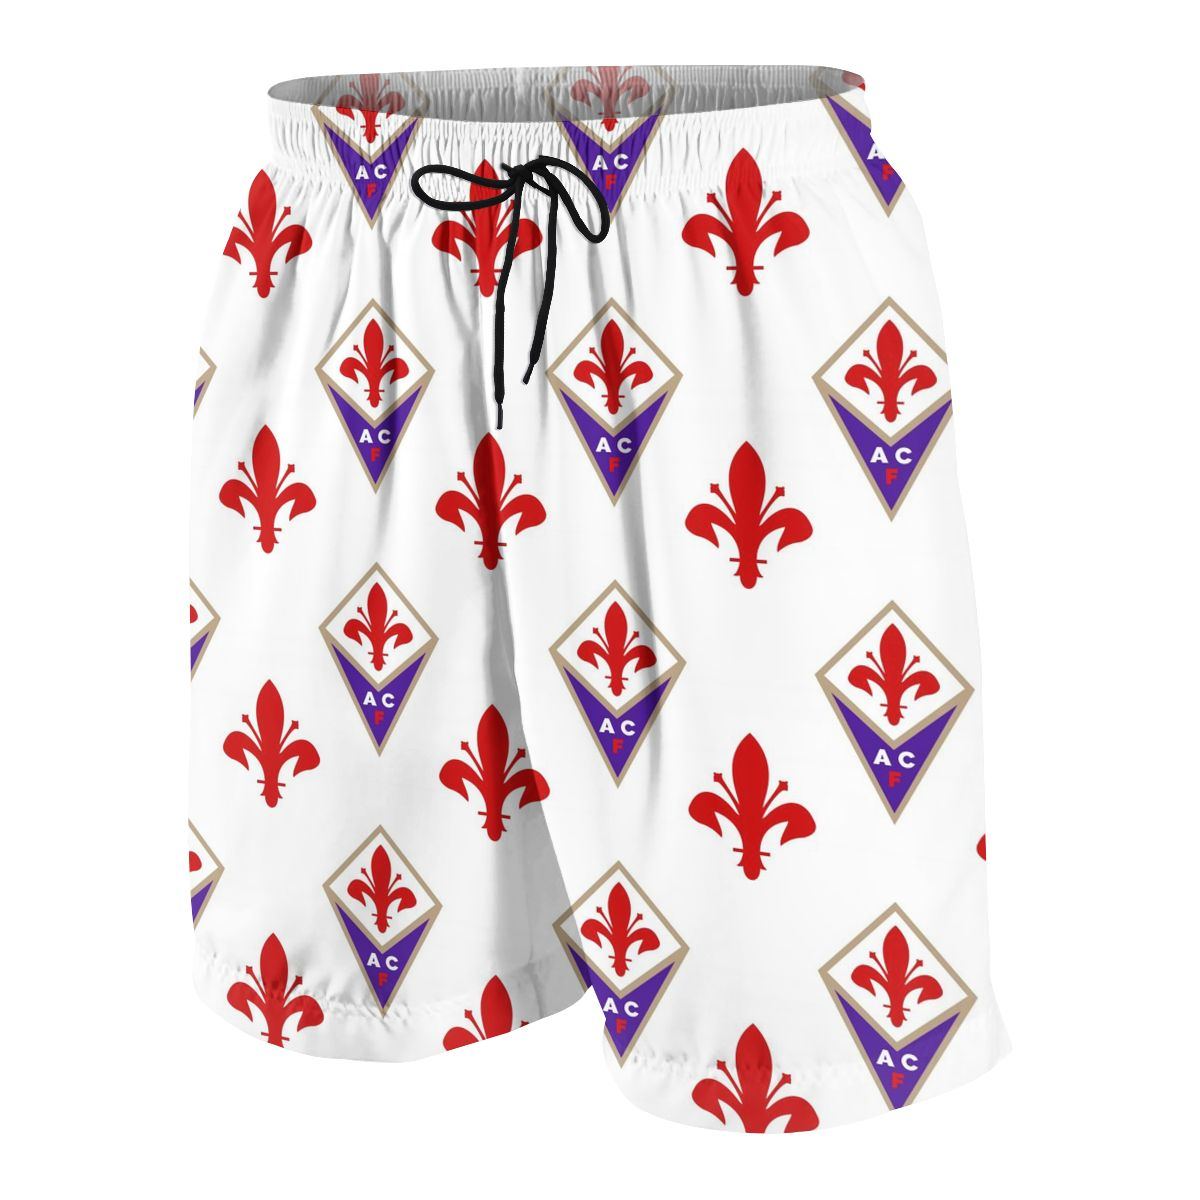 ACF Fiorentina Youngsters Shorts Joggers Quick-dry Cool Short Pants Casual Beach Sweatpants